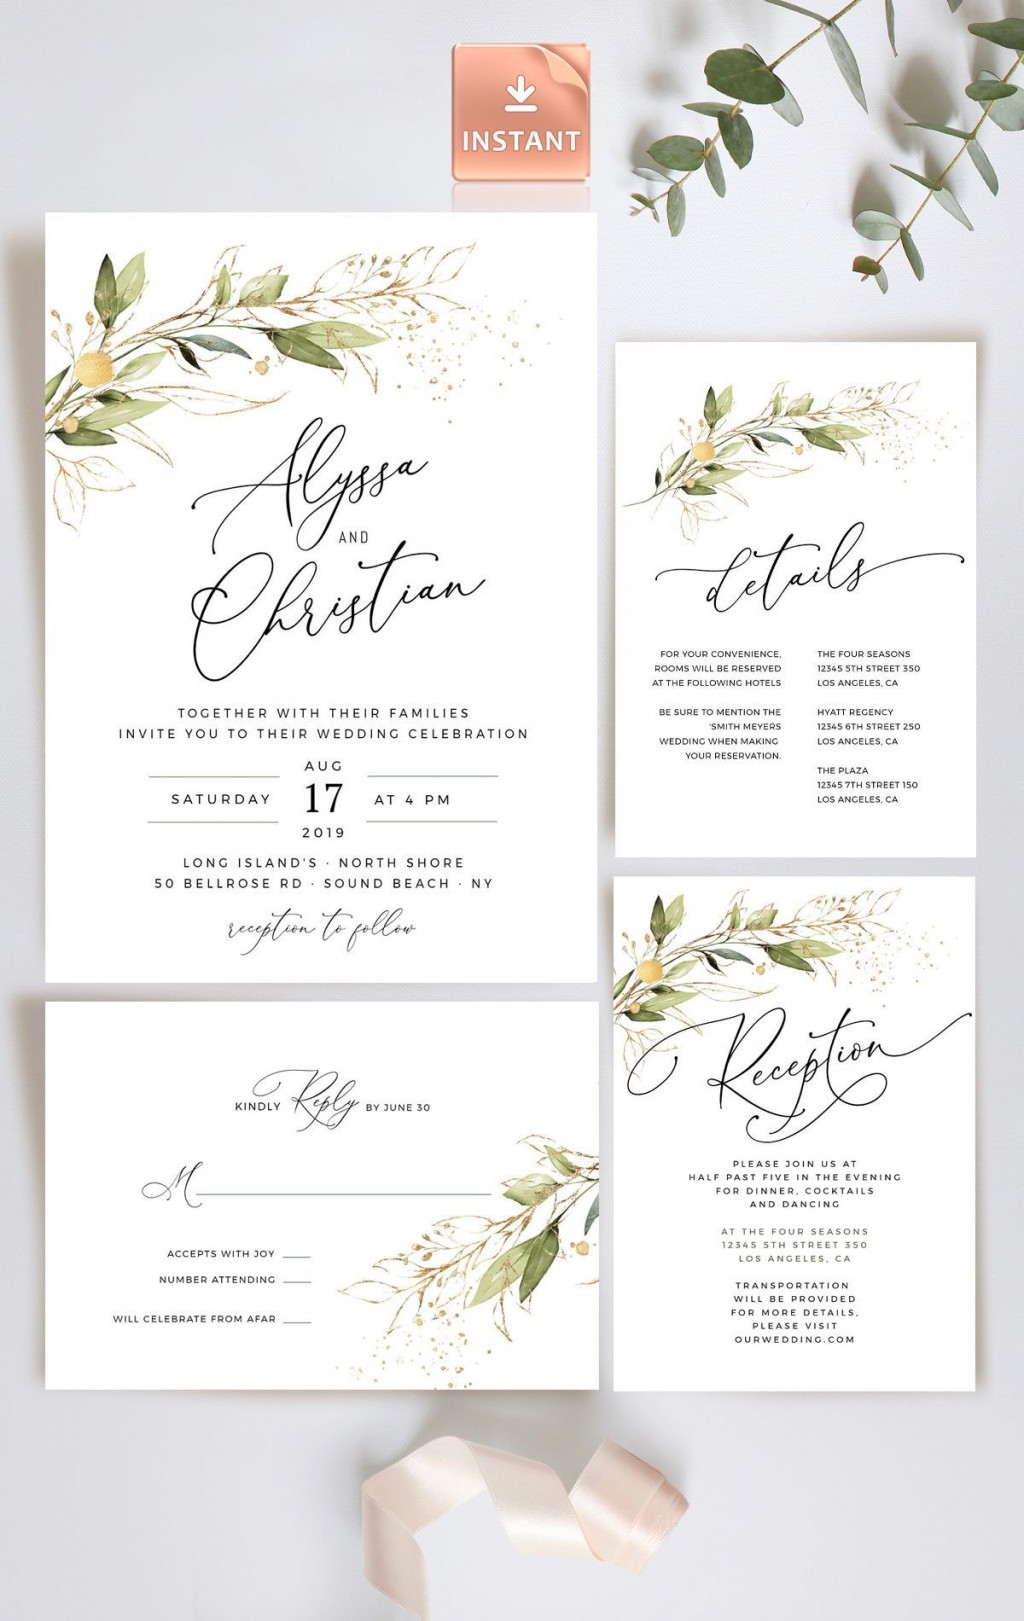 006 Stunning Formal Wedding Invitation Template Highest Clarity  Templates Email Format Wording FreeLarge